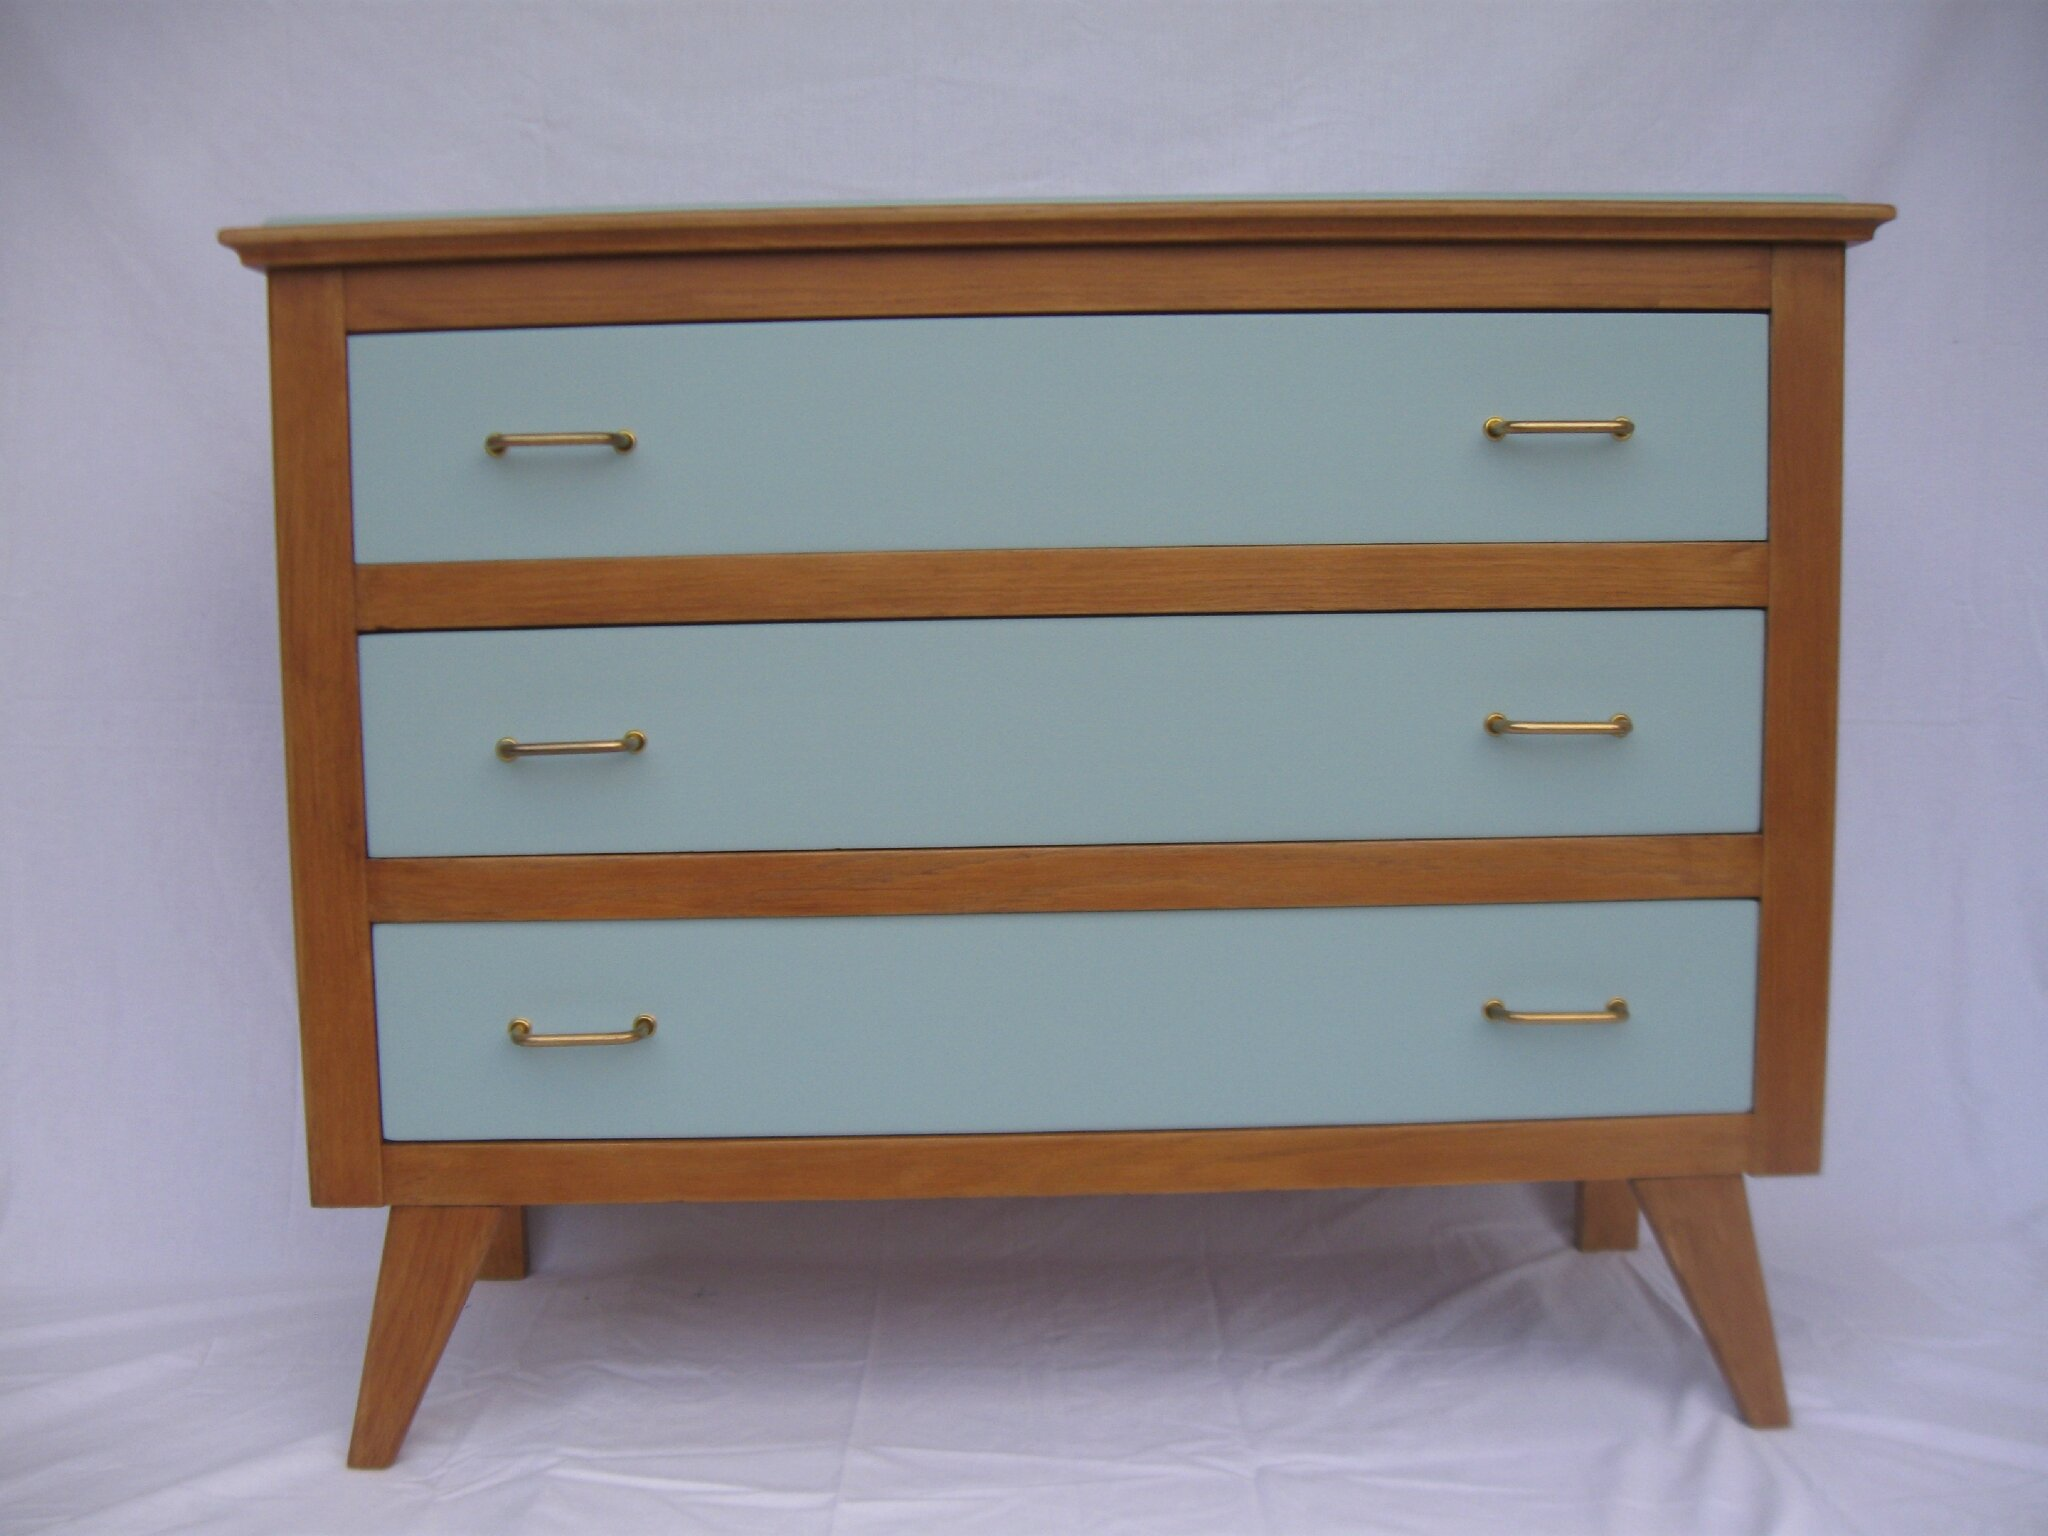 commode vintage annees 50 pieds compas relookee rserve - Commode Vintage Pieds Compas